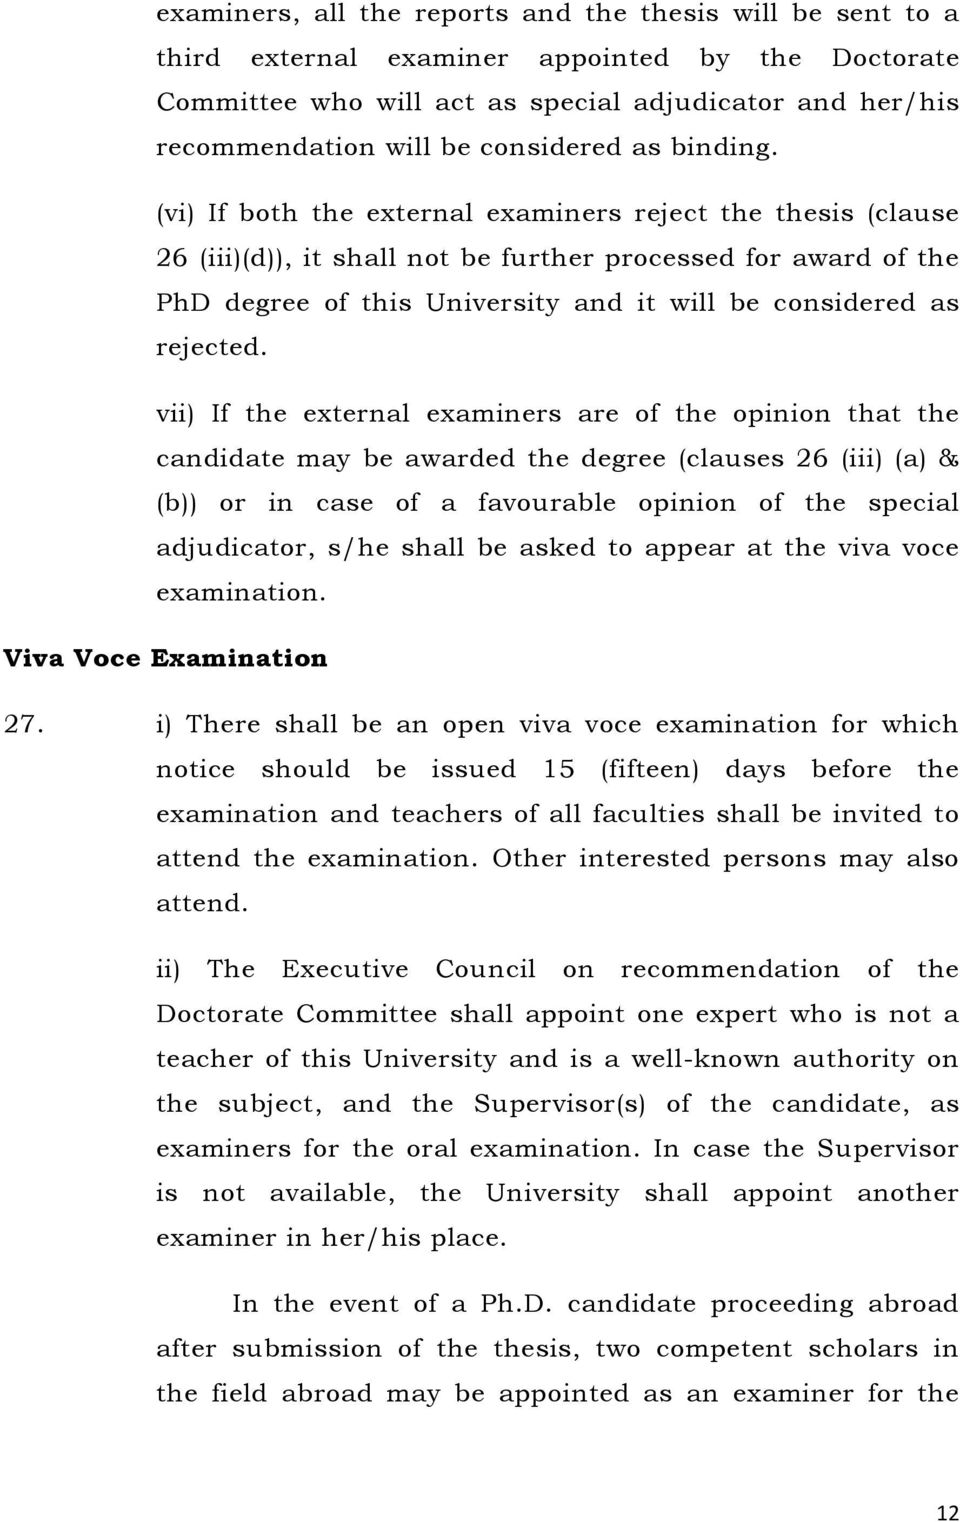 (vi) If both the external examiners reject the thesis (clause 26 (iii)(d)), it shall not be further processed for award of the PhD degree of this University and it will be considered as rejected.